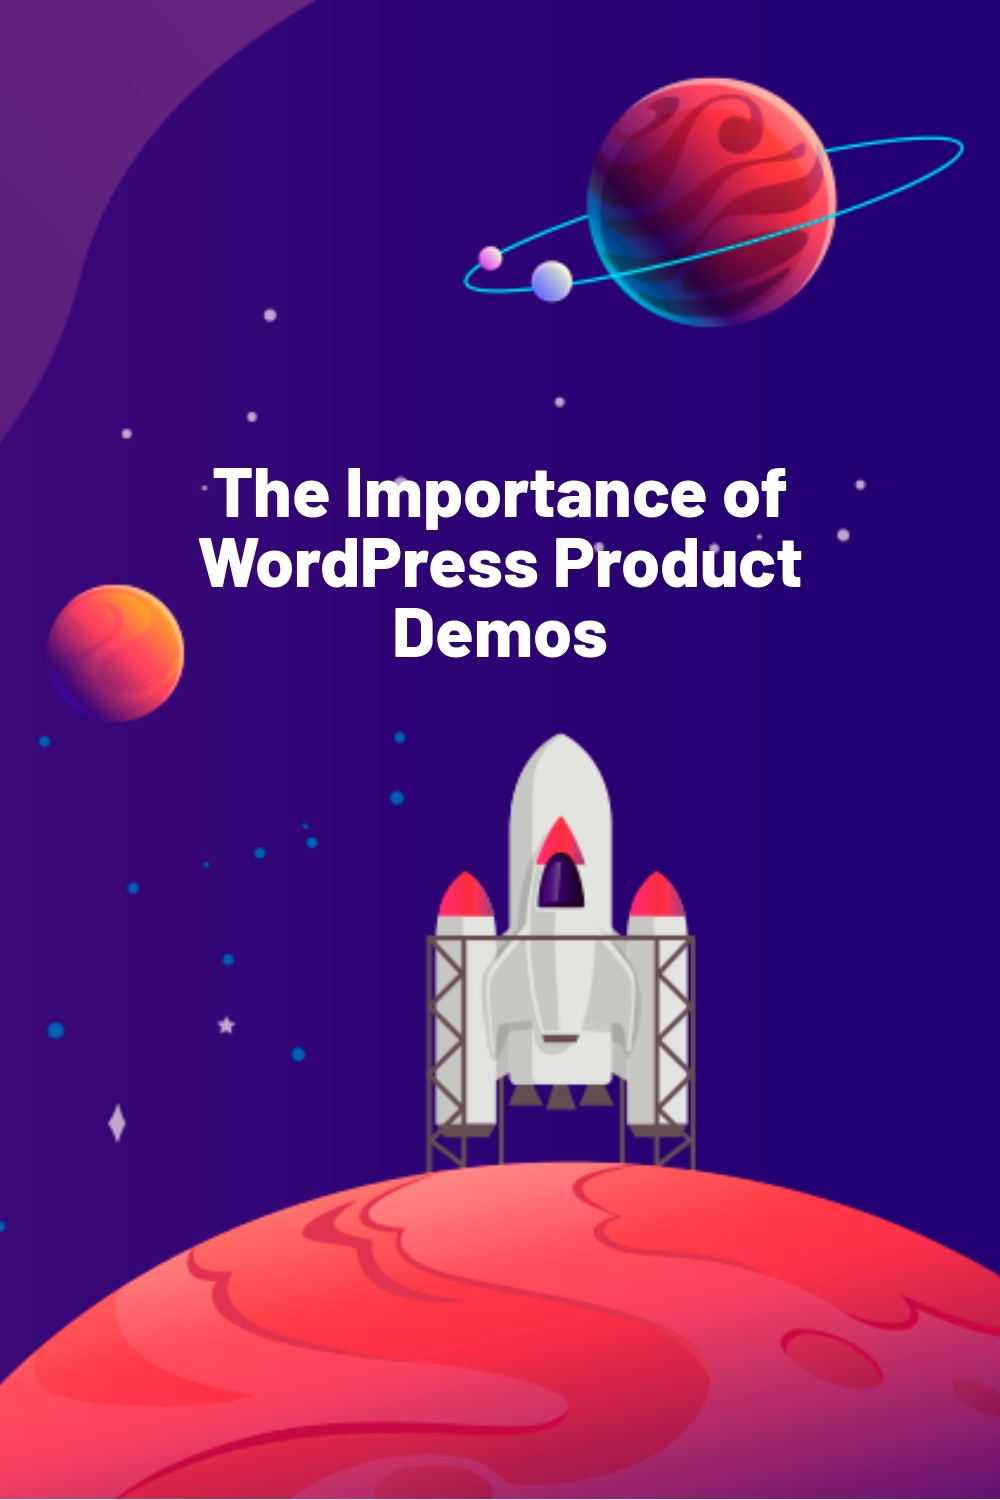 The Importance of WordPress Product Demos